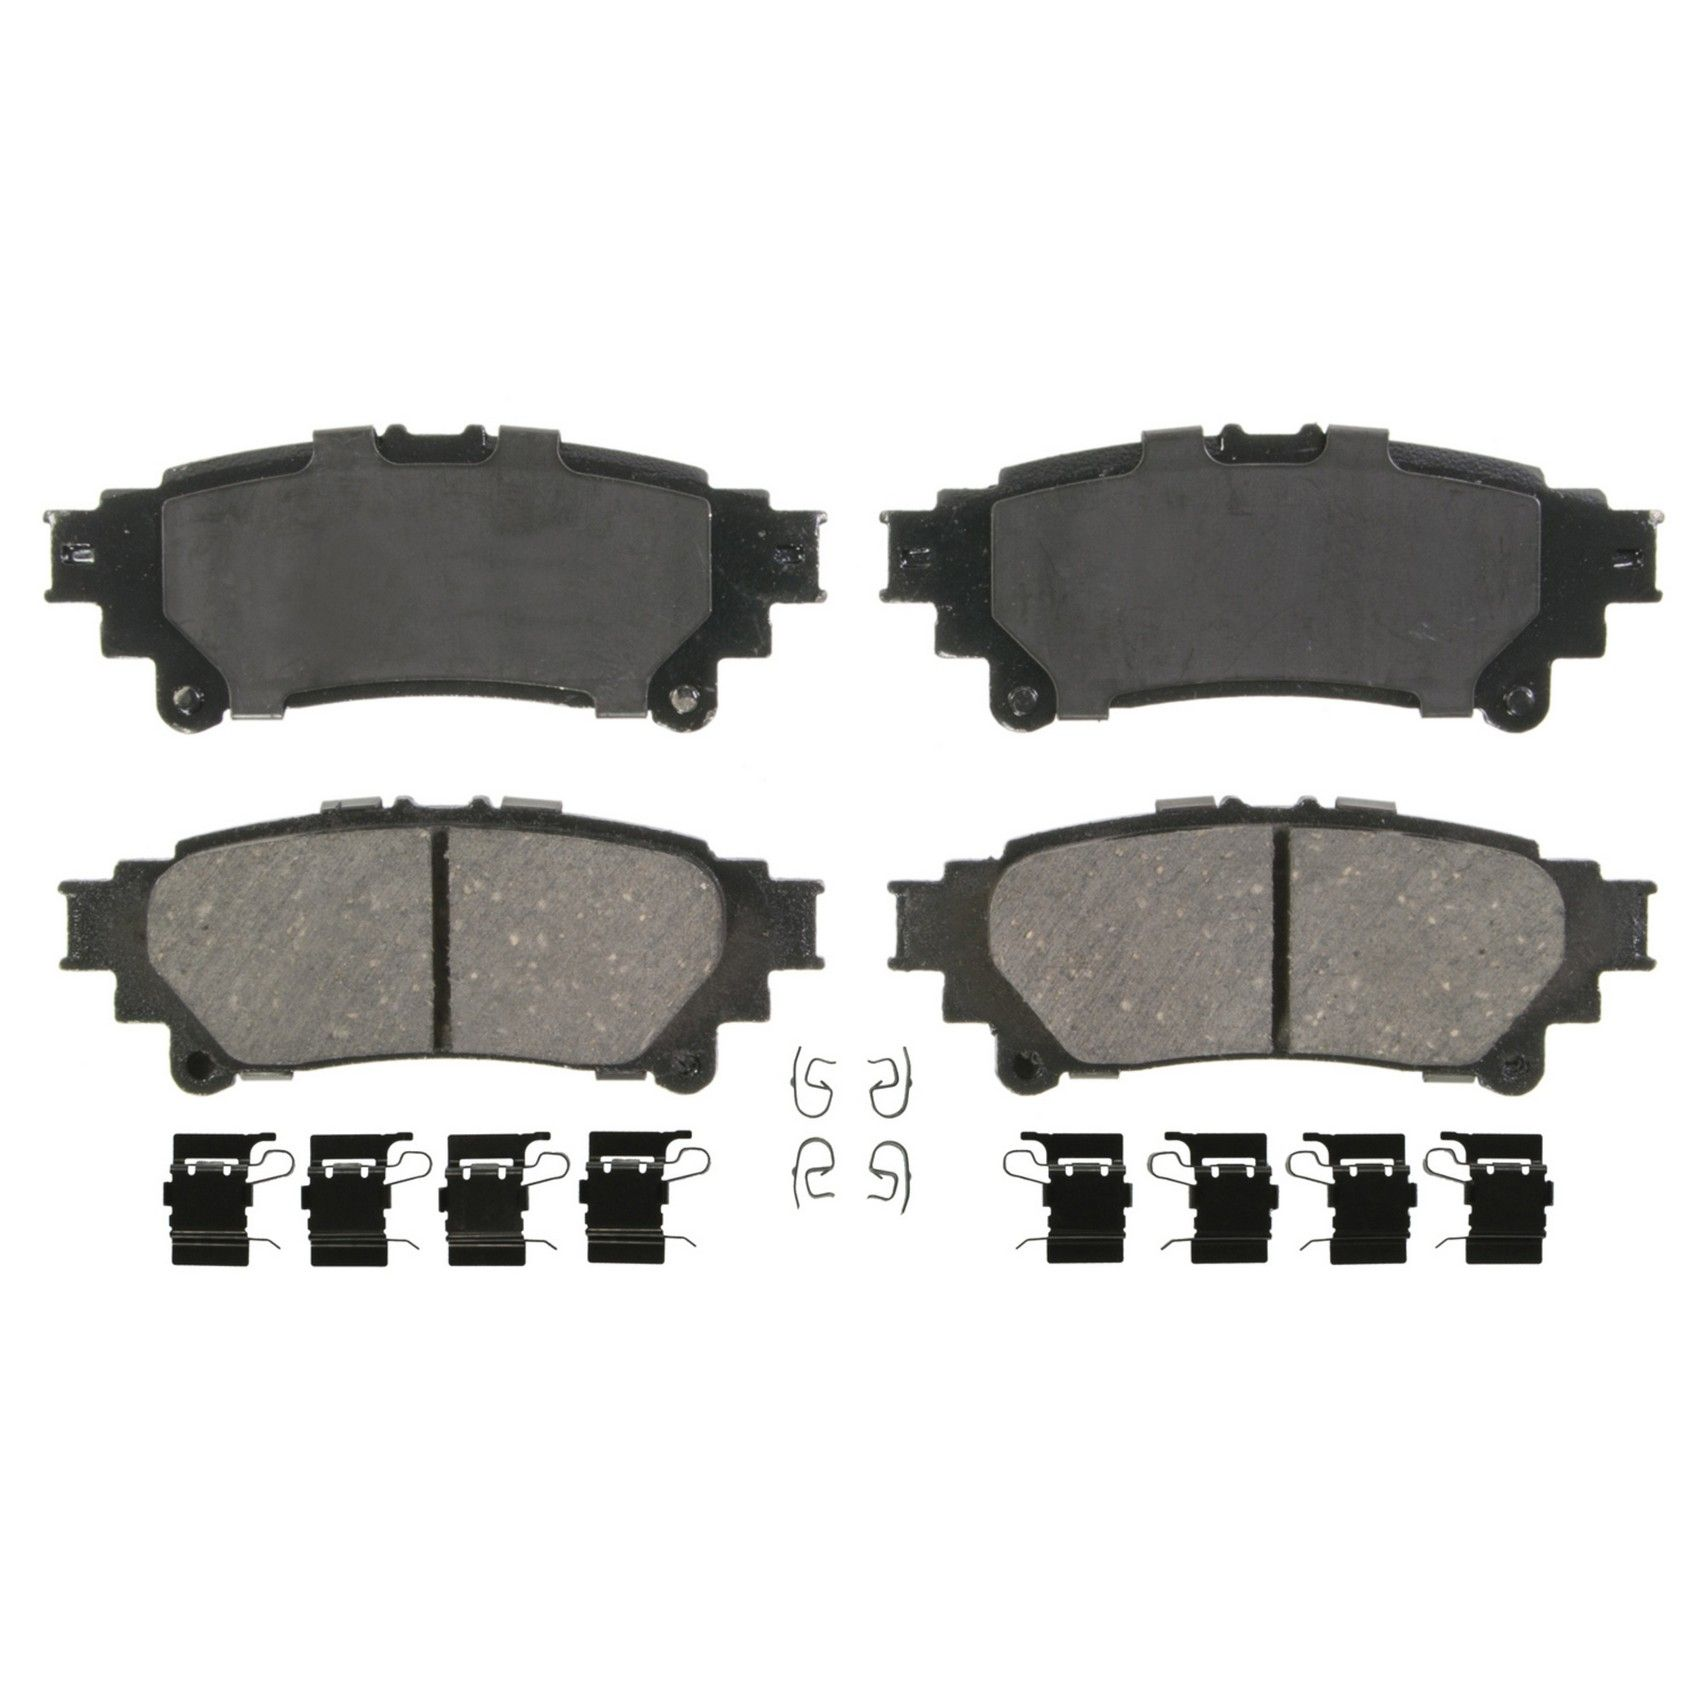 Toyota Prius V Disc Brake Pad Replacement Advics Akebono Beck 2012 Wiring Diagram Rear Wagner Brakes Zd1391 Oe Ceramic Includes Installation Hardware Kit Quickstop